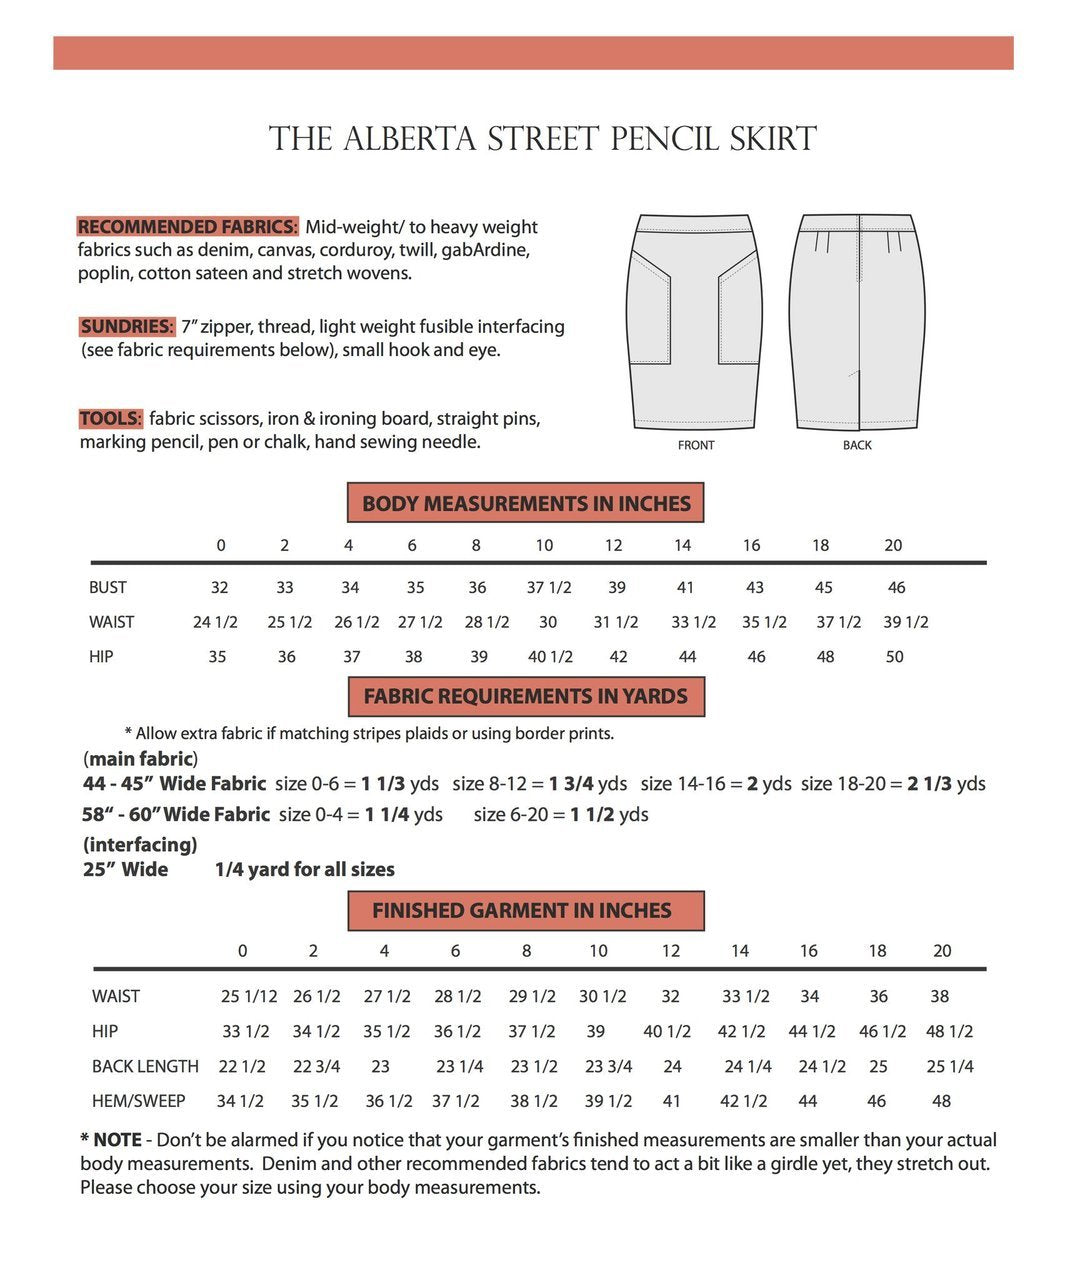 Sew House 7 - Alberta Street Pencil Skirt